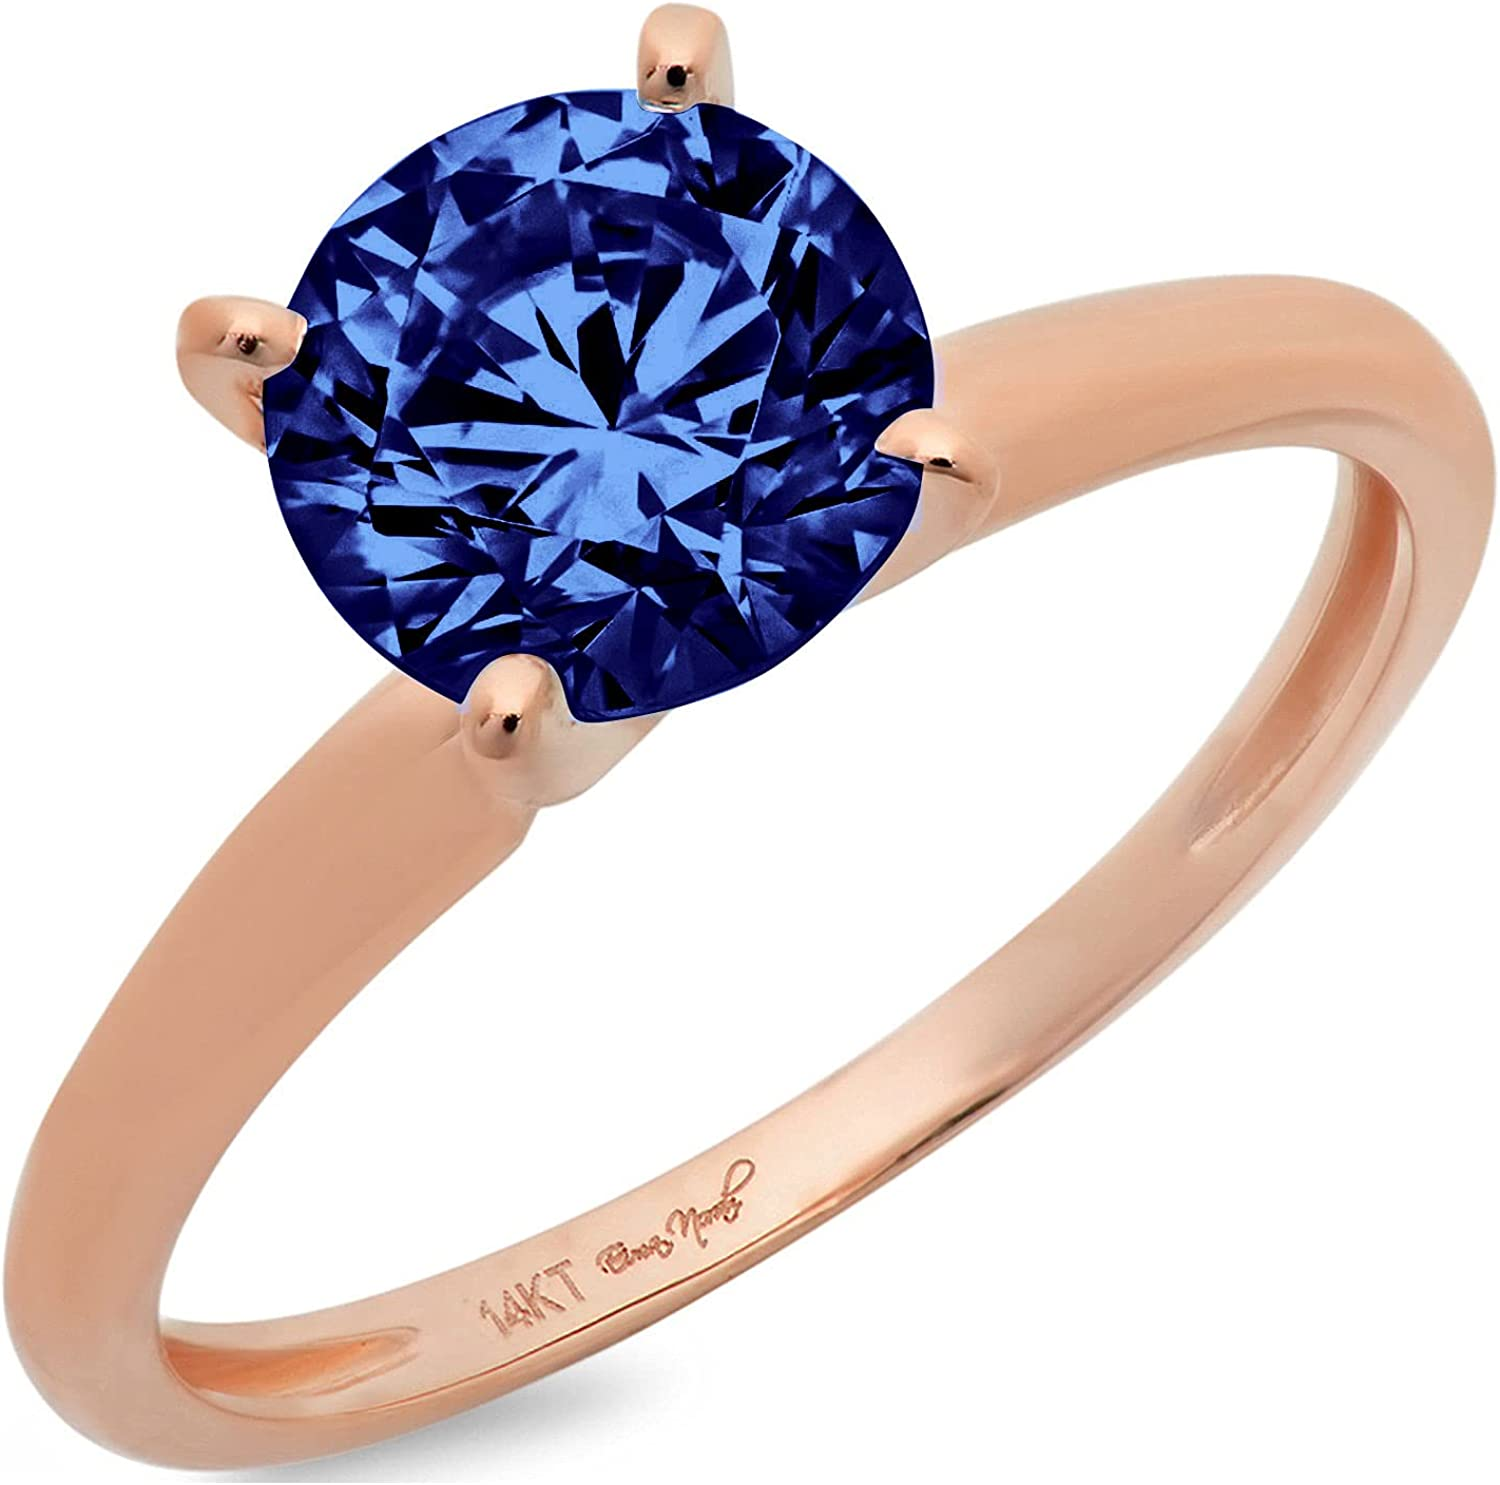 2.45 Over item handling ☆ ct Round Cut Solitaire Simulated Flawless CZ 5% OFF Tanzanite Blue